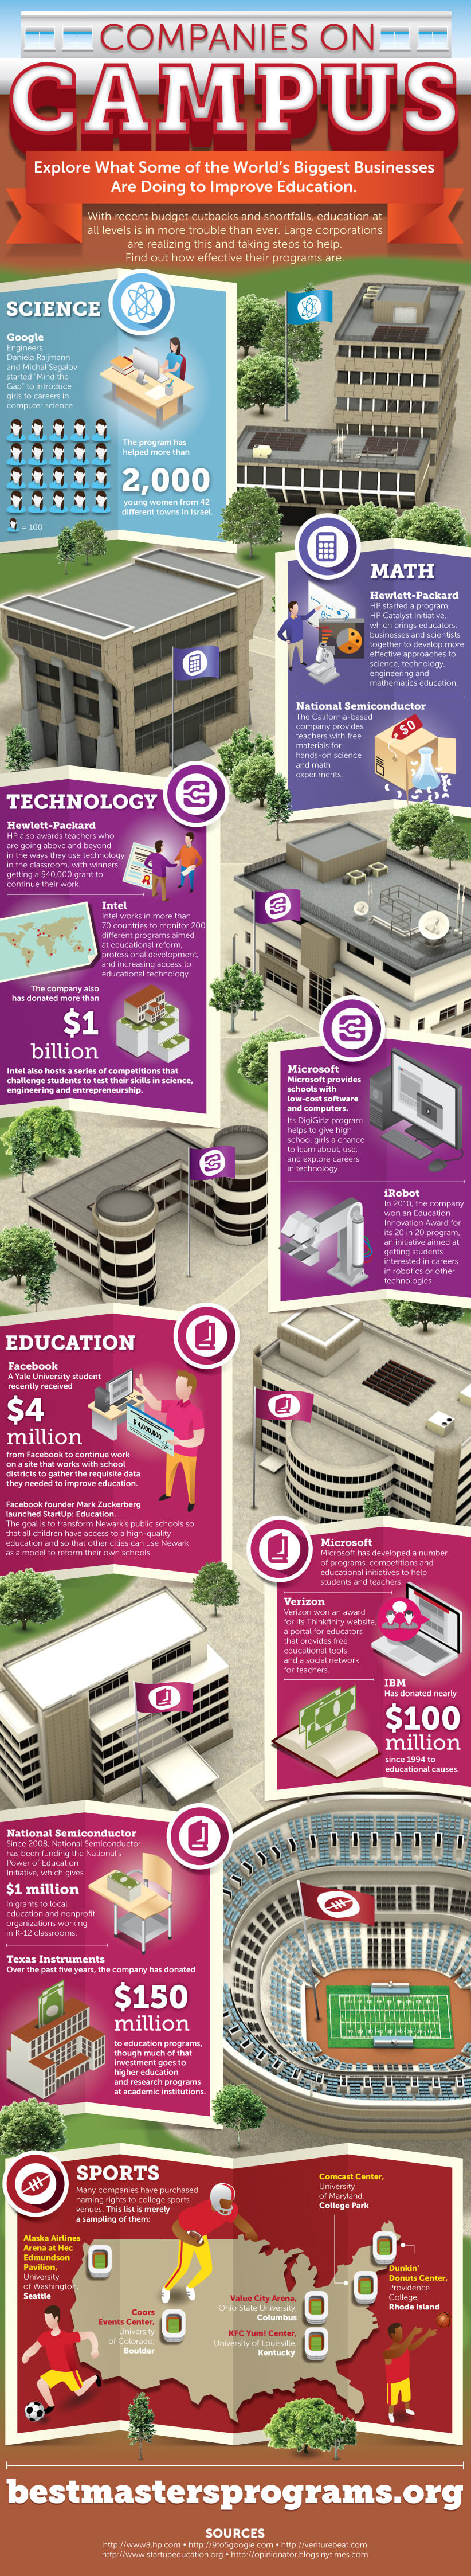 companies-on-campus-infographic